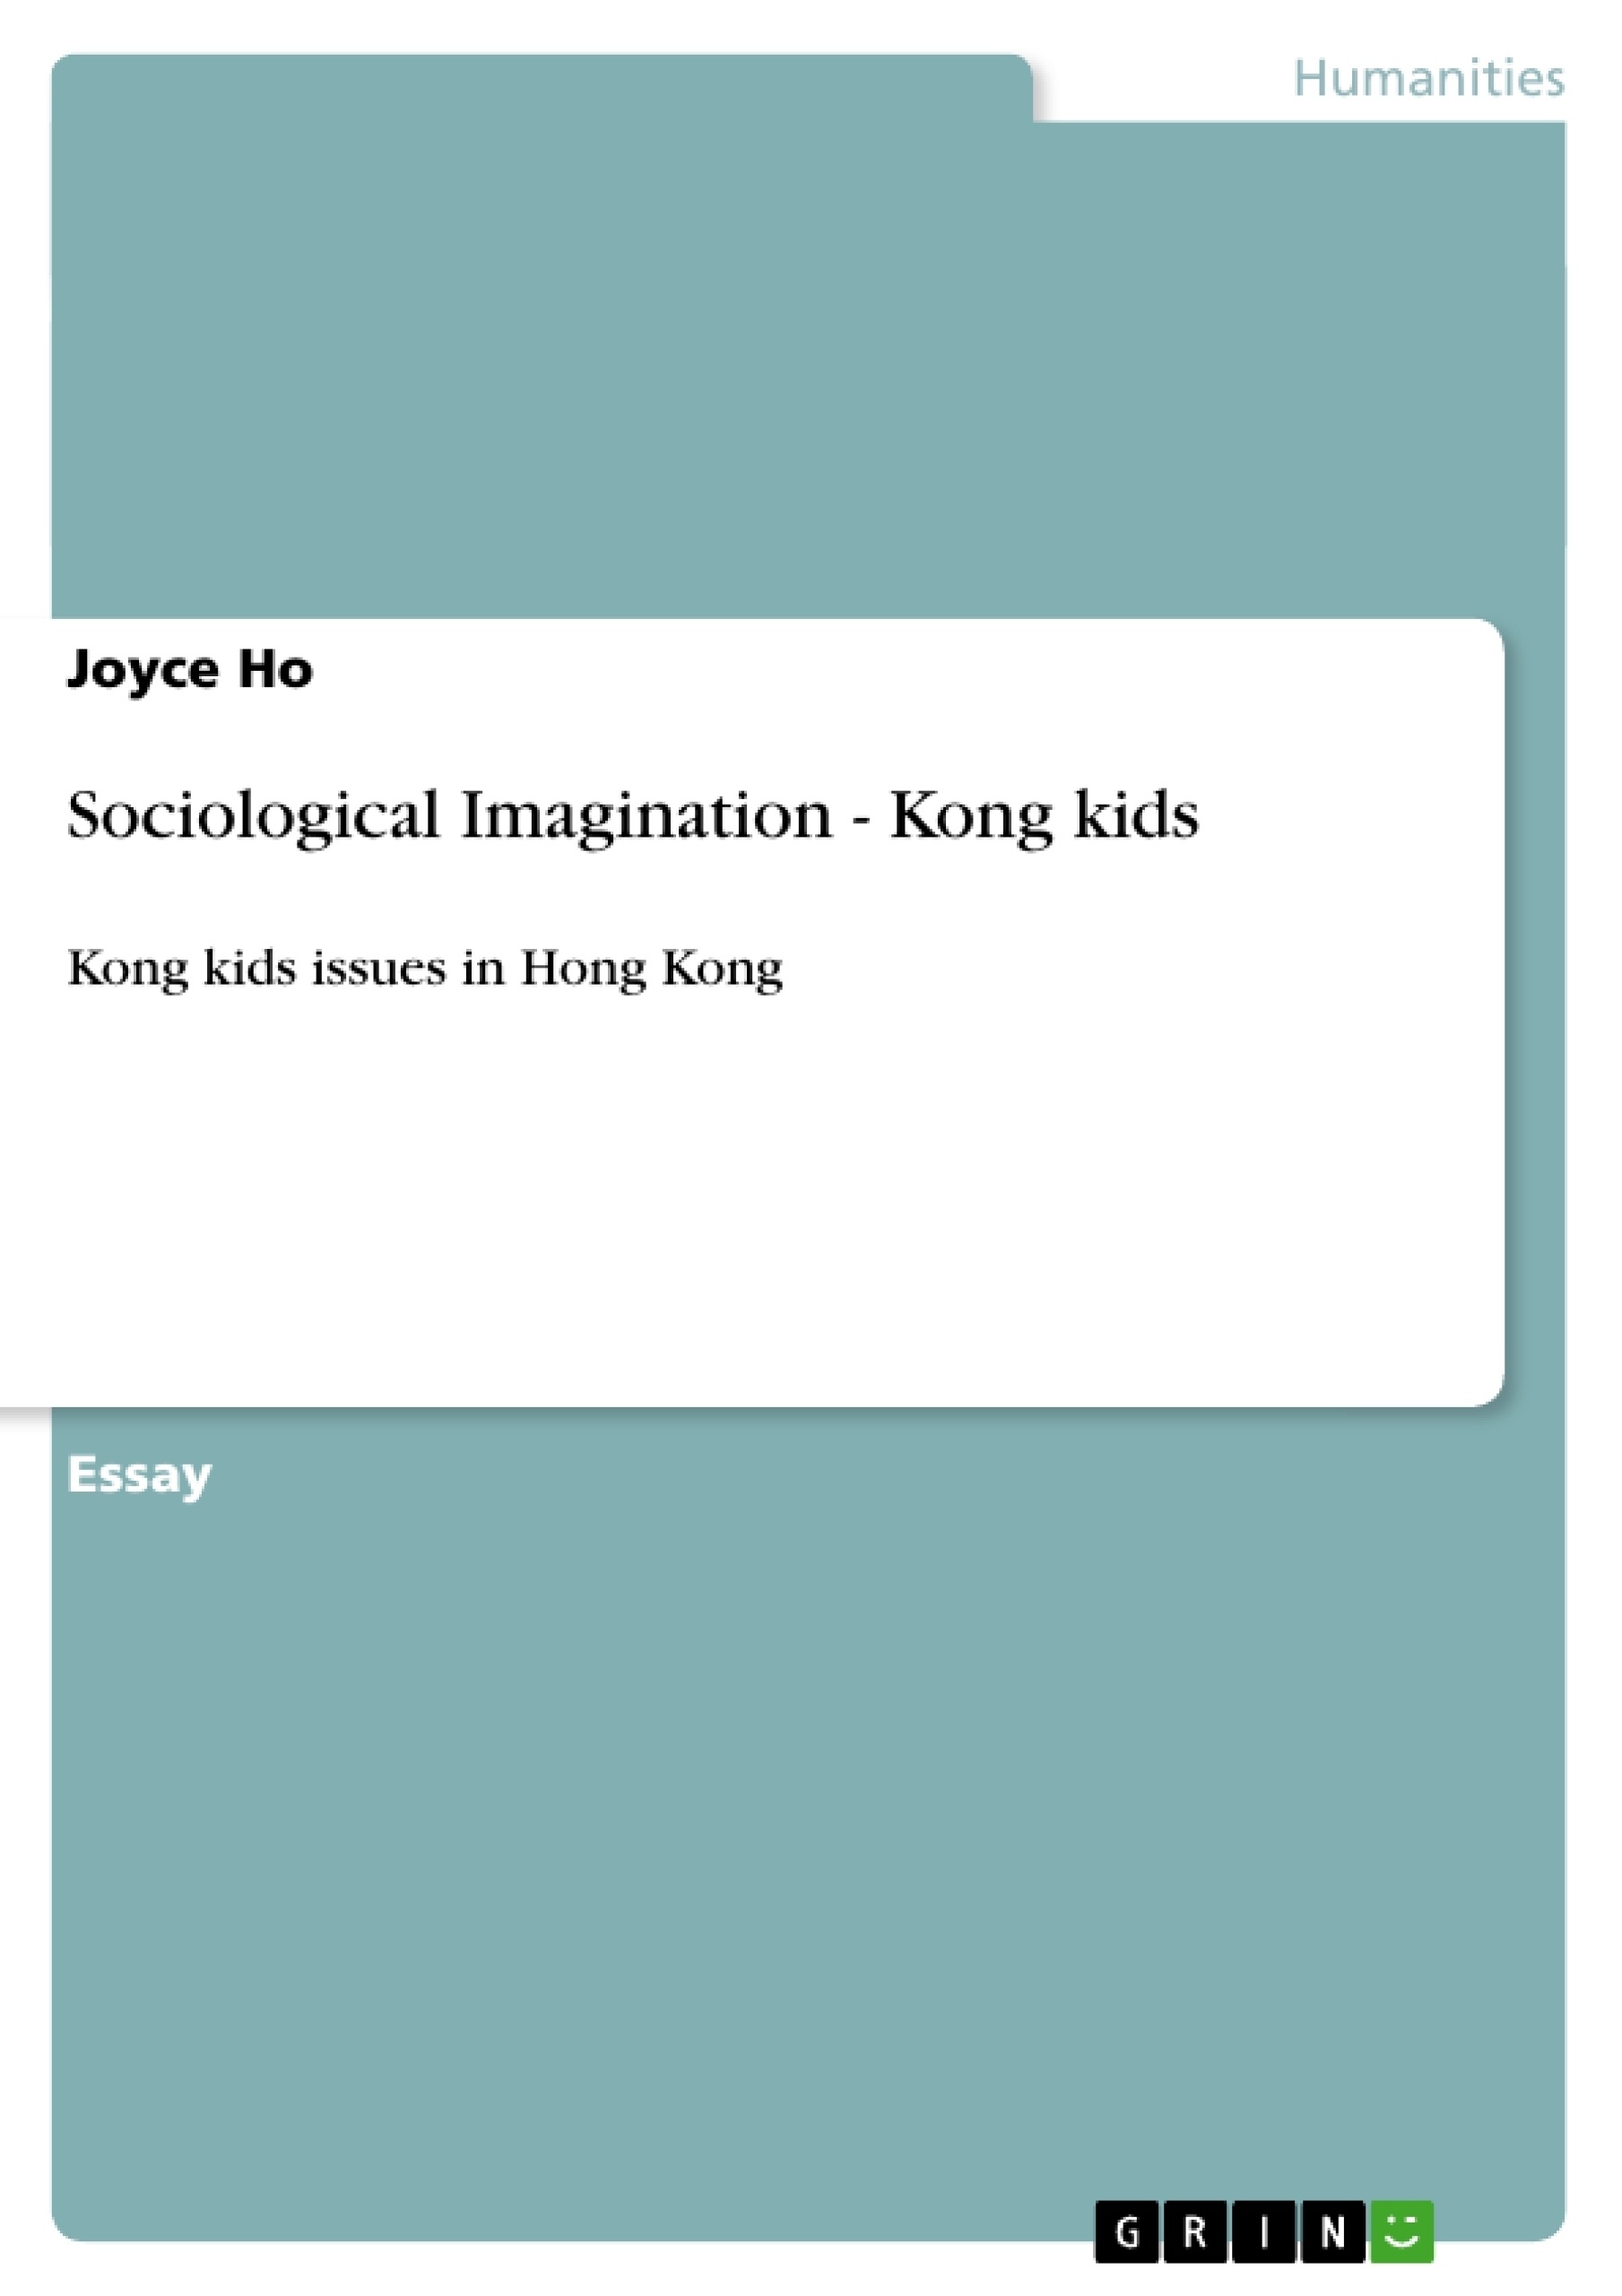 sociological imagination kong kids publish your master s  sociological imagination kong kids publish your master s thesis bachelor s thesis essay or term paper